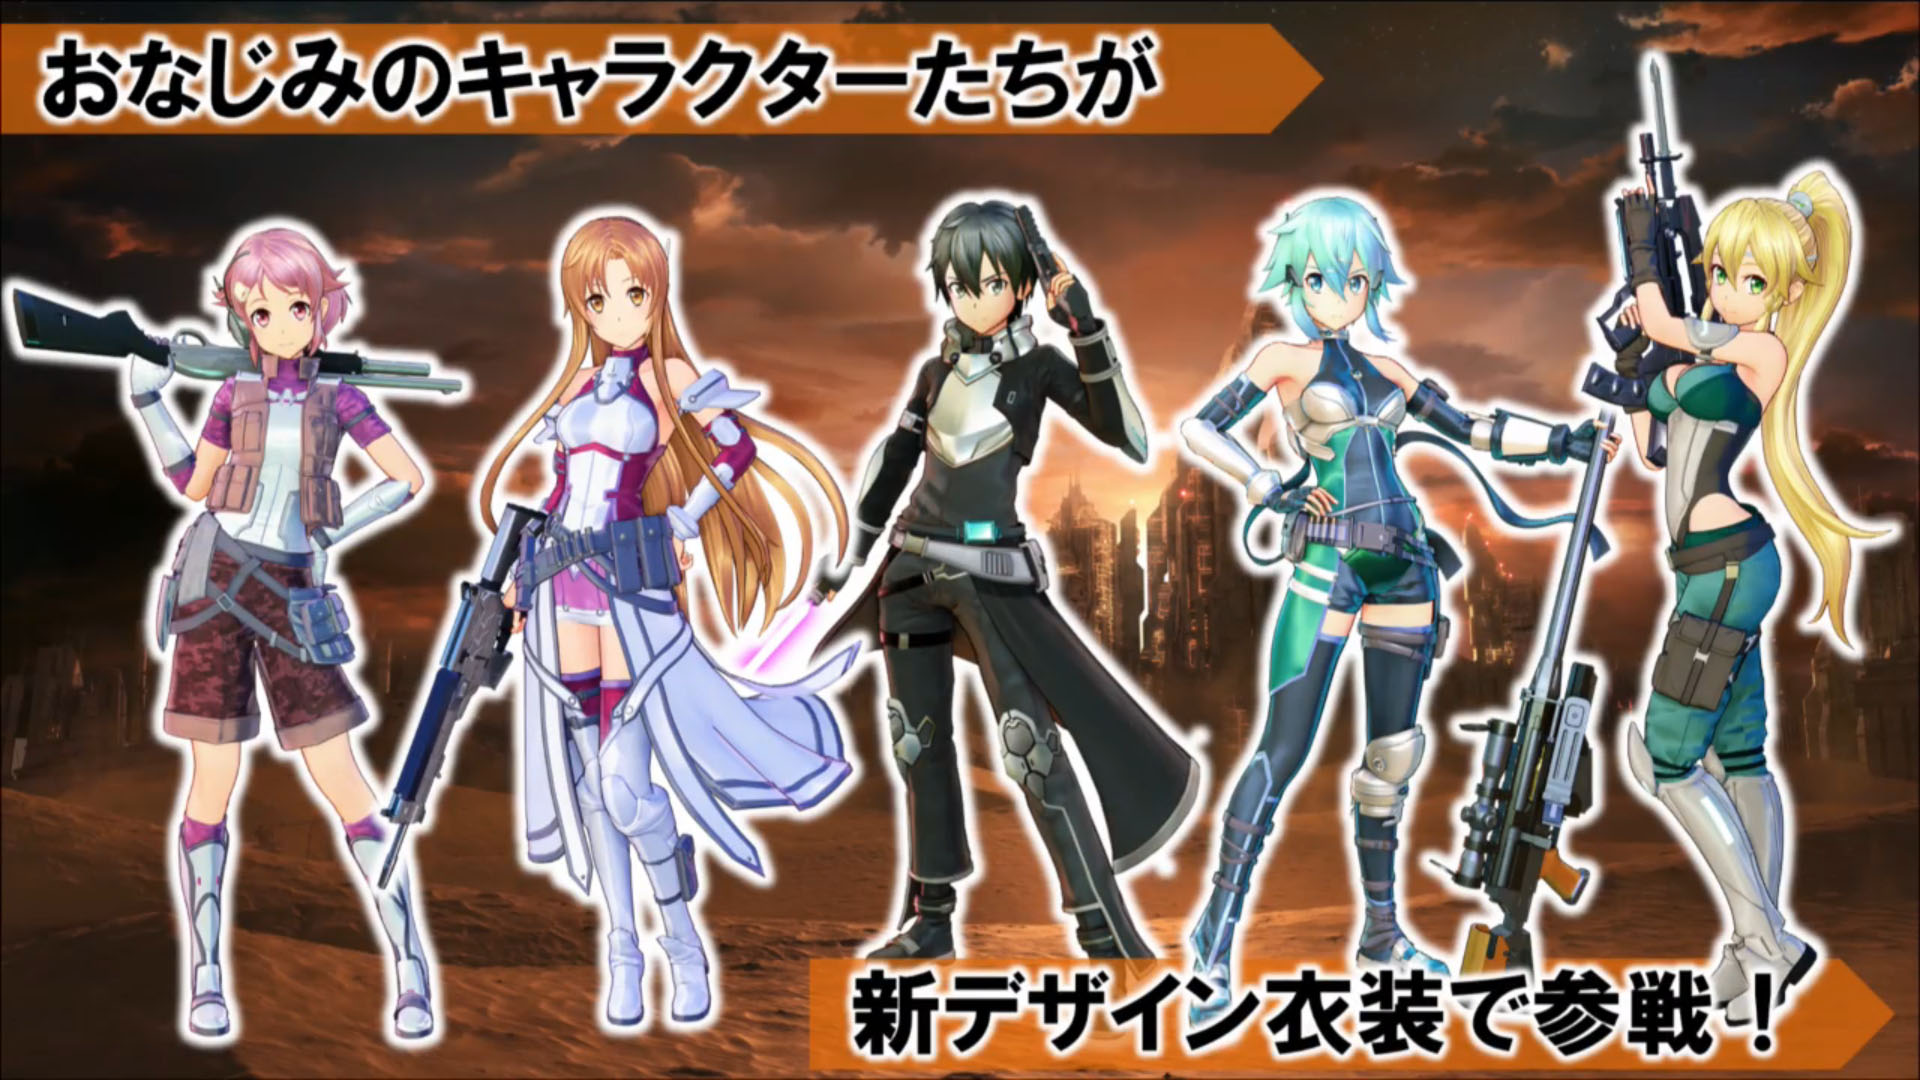 Sword art online: fatal bullet dating